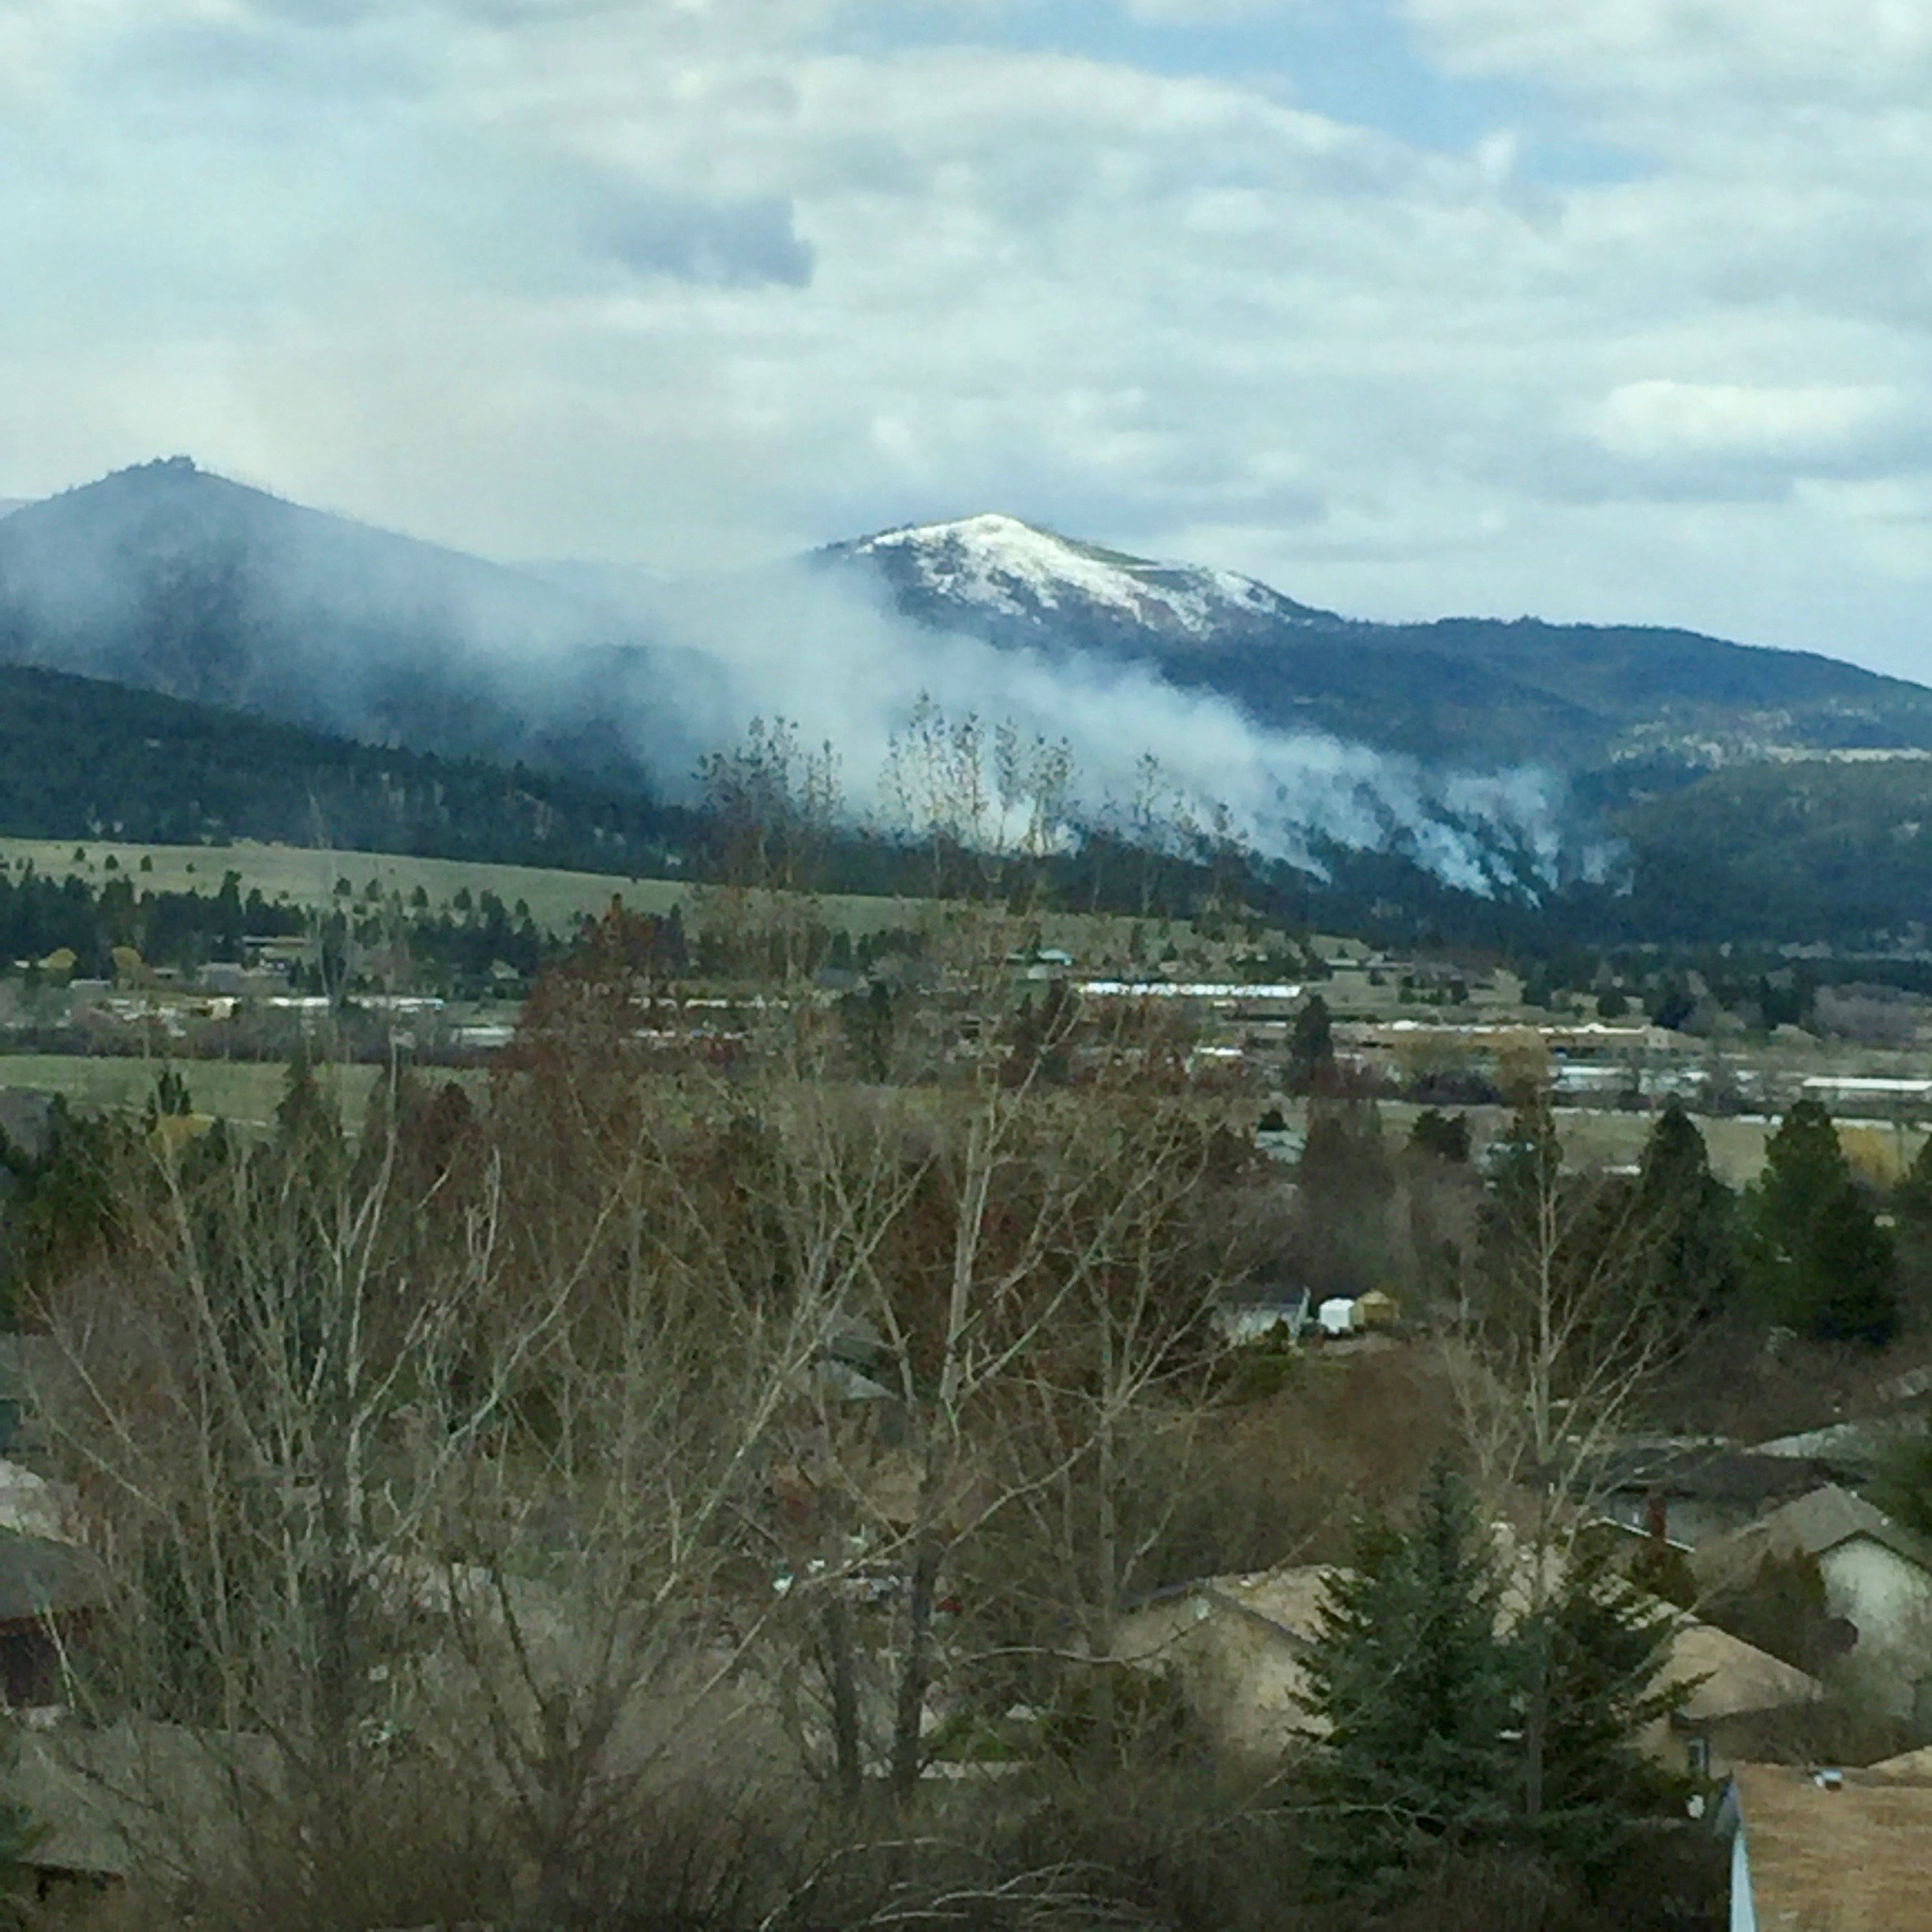 The prescribed burn in the Blue Mountain area on 4.23.18. (photo credit: Jonathan Rose)